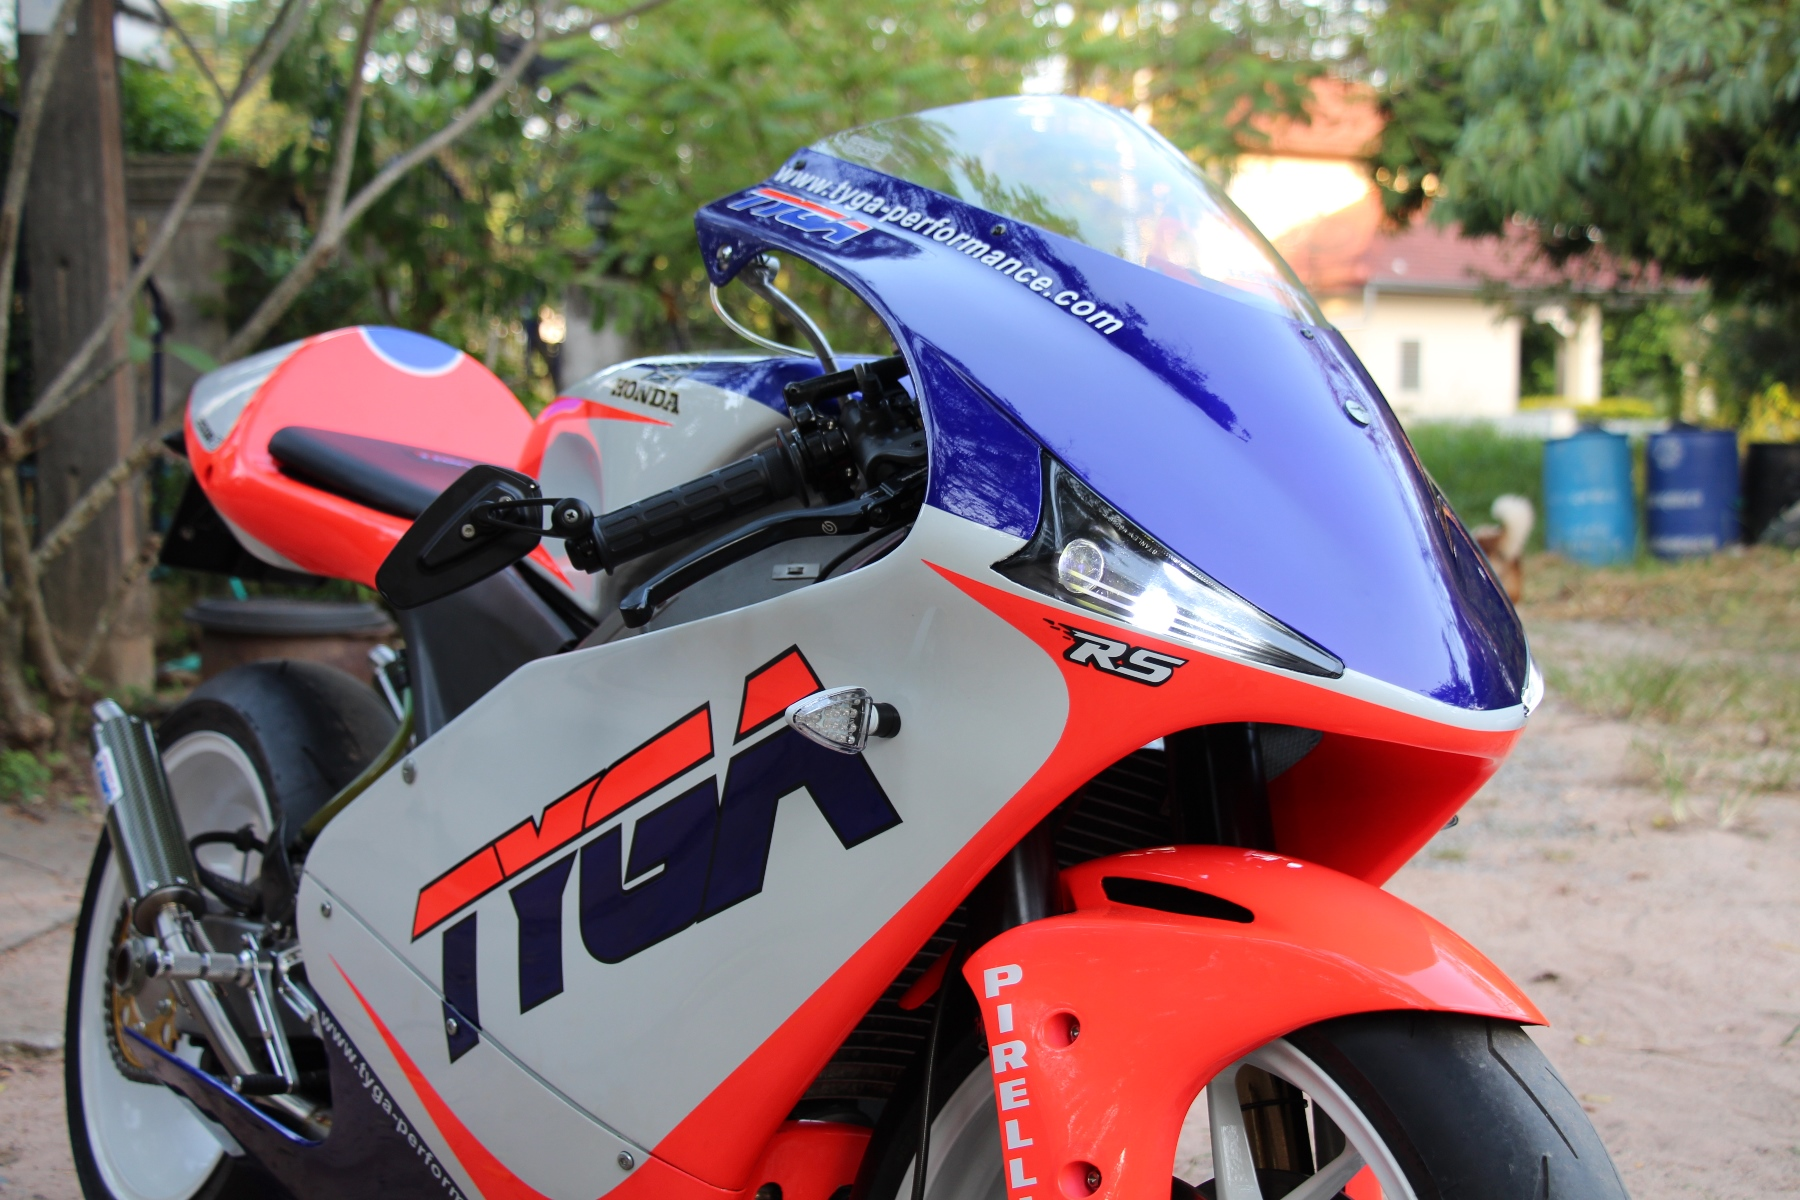 Tyga Street Nx 5 Rs250r S Performance Klx 250 Wiring Diagram The Fairing Is Attached To Frame By Custom Made Stays With Quick Release R Clips